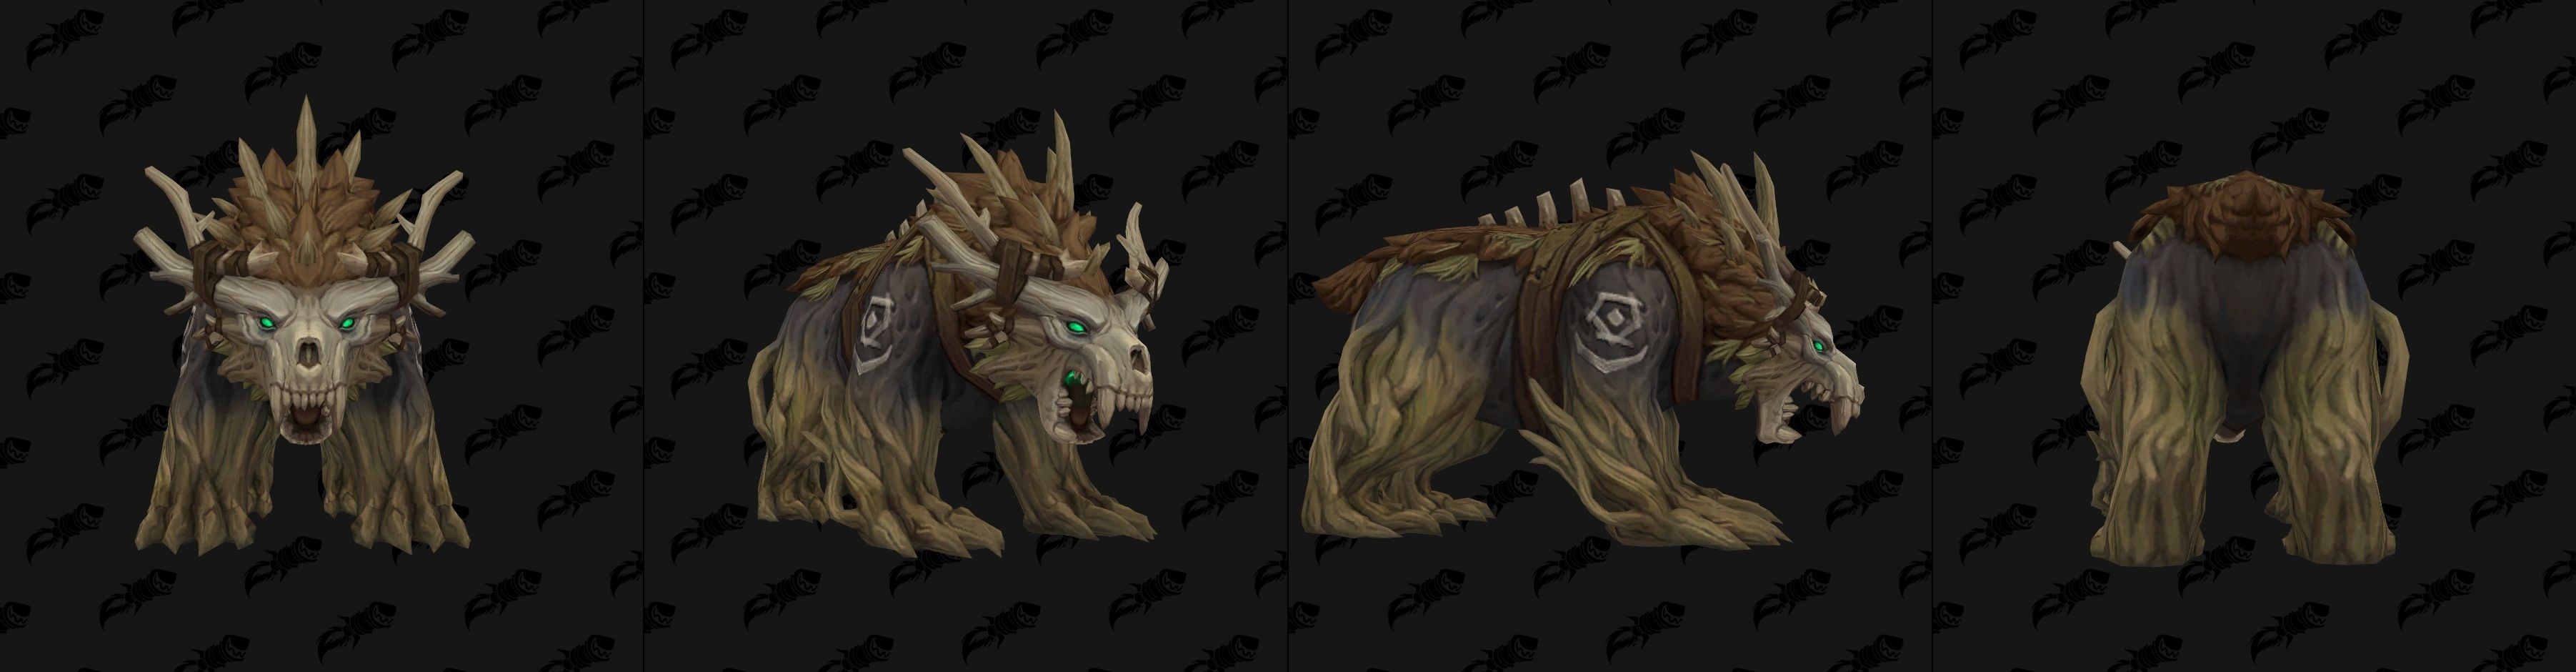 WoW Kul Tiras Bearform 2